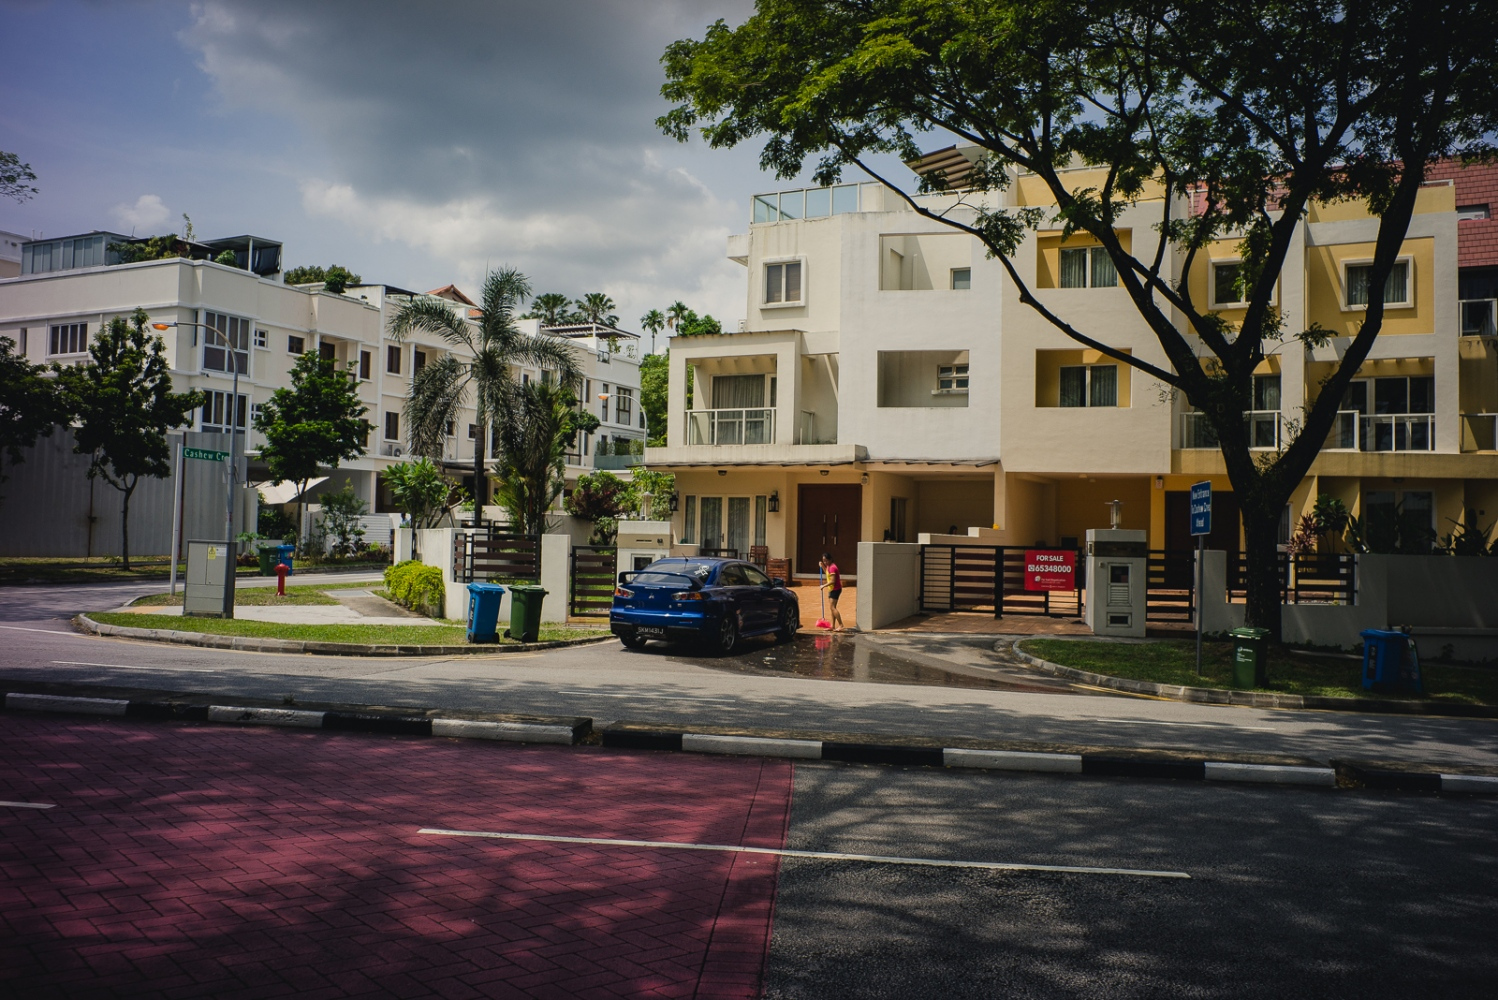 A Foreign Domestic Worker sweeps the driveway after washing a car outside a landed property in Singapore. Foreign domestic workers are required by Singapore law to live with their employers.